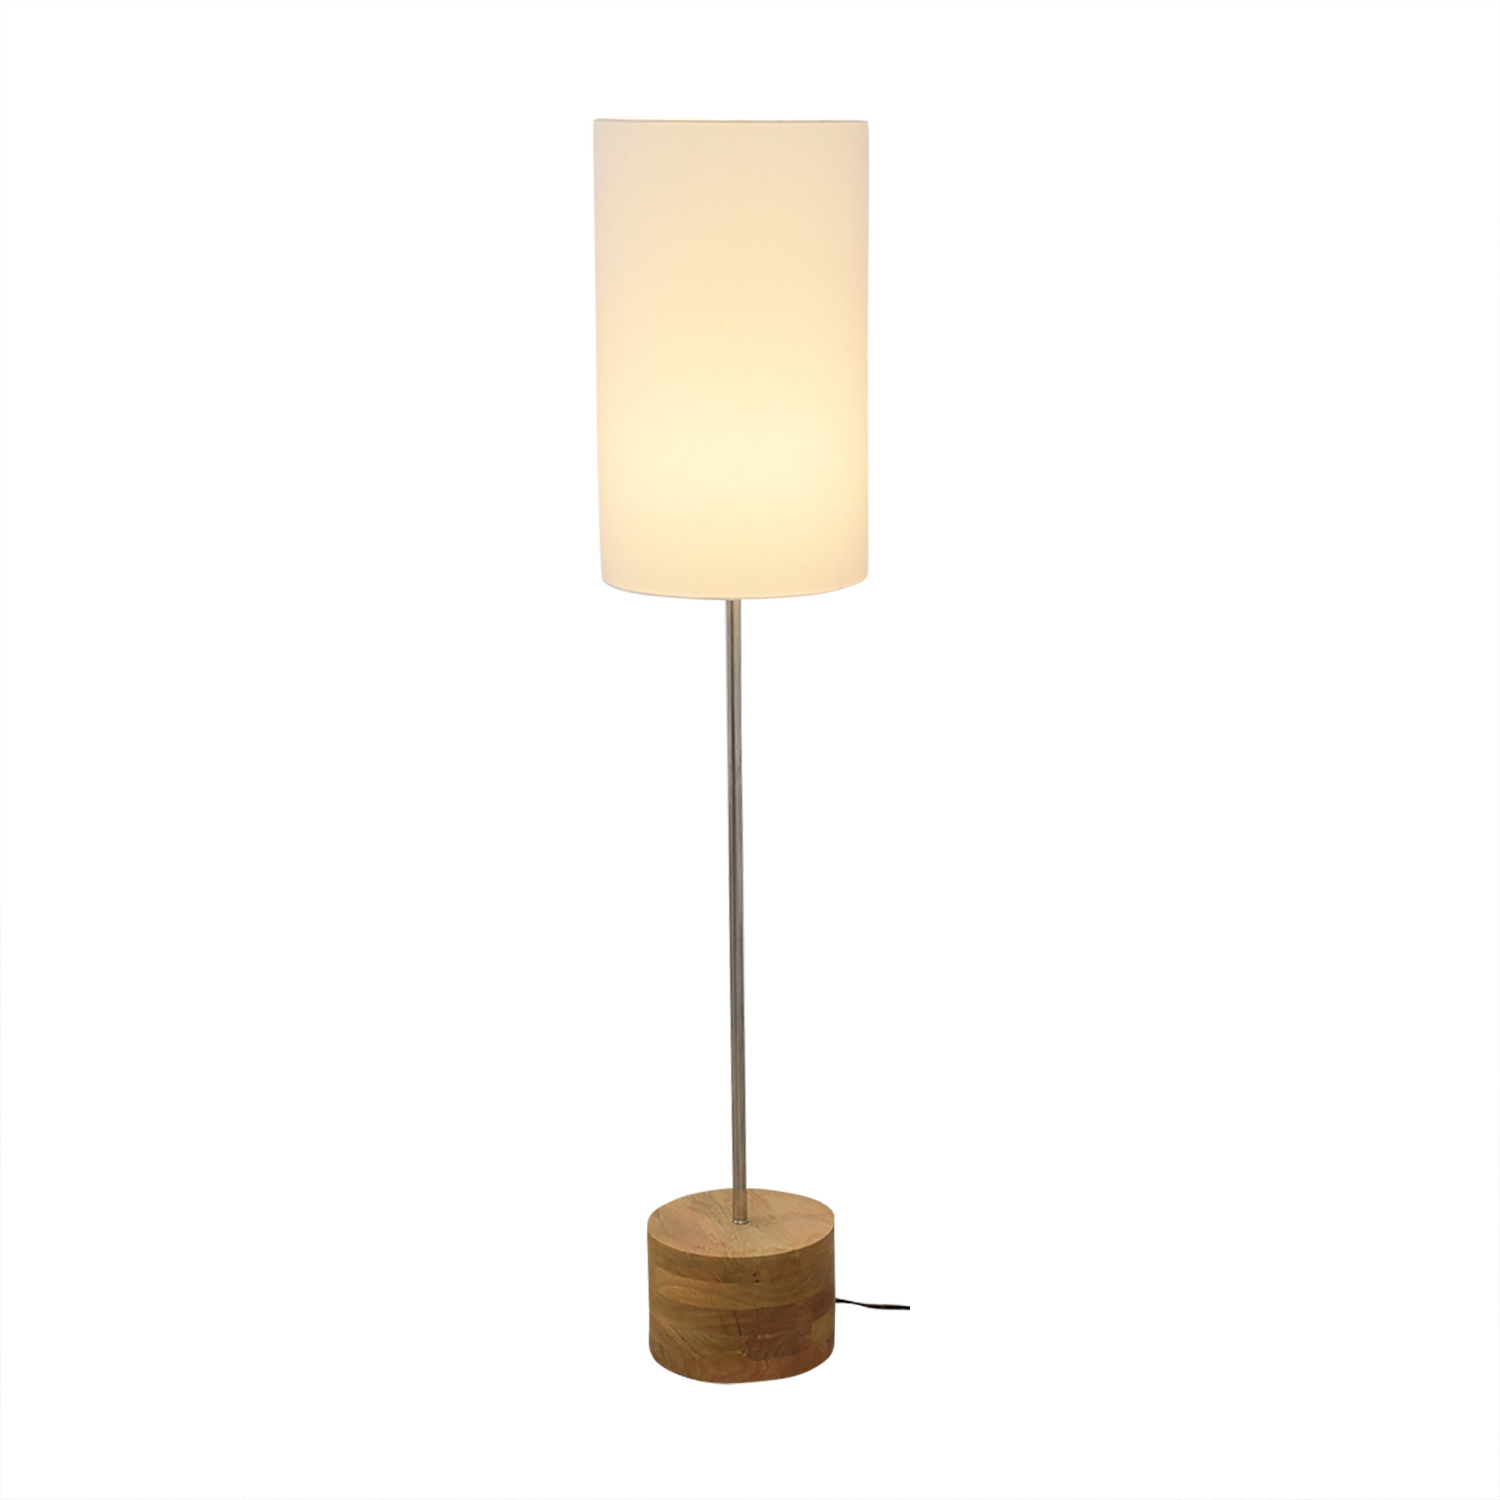 buy Crate & Barrel Tribeca Floor Lamp Crate & Barrel